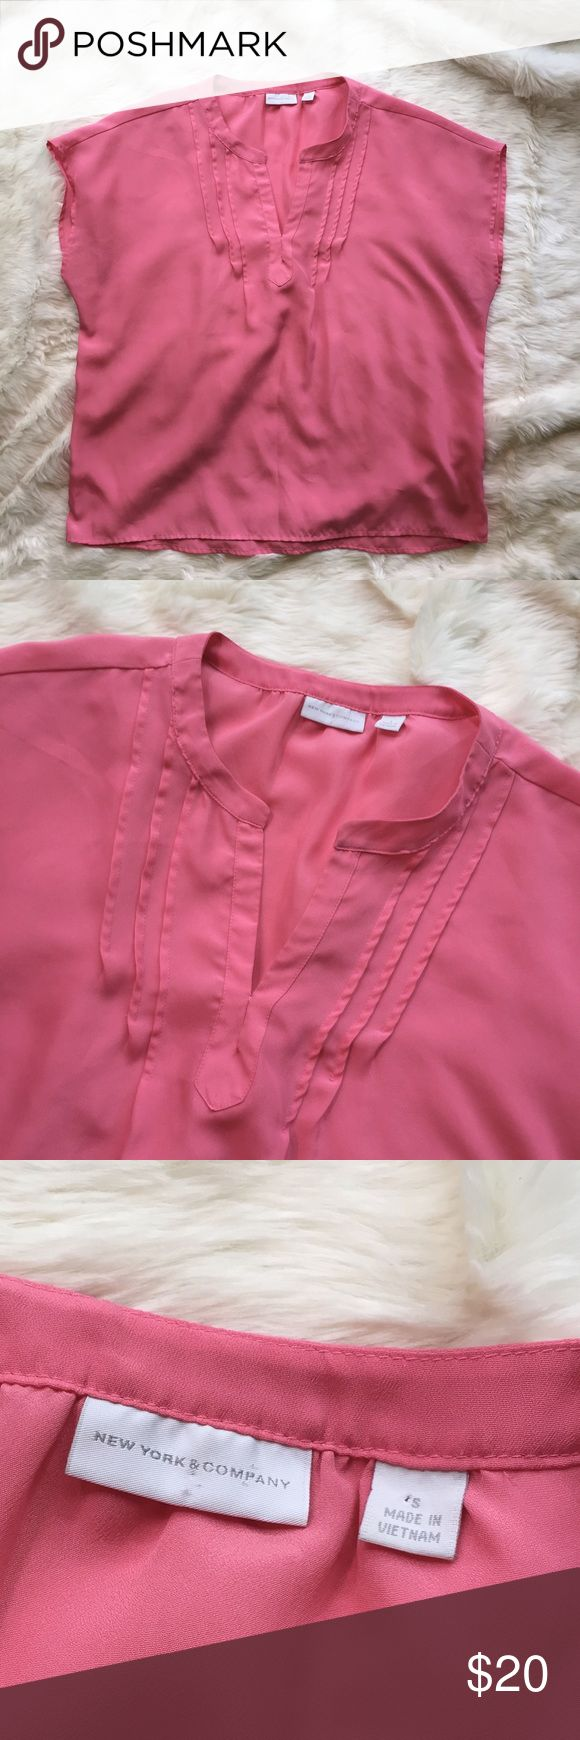 """NY & Co tunic pink top blouse batwing shirt Pink, loose-fit top, by New York and Company. Color is a true pink, not pastel and not hot pink, I consider it a bubblegum color. Shirt is a tunic style, with capped/batwing sleeves. Excellent, gently used condition. Note- the color in photos on my iPhone 6 is a lot brighter than the true color. On my iPad mini, the color is exact. Please know colors vary from screen to screen.   Approximate measurements:  23.5"""" across bust  23"""" total length New…"""